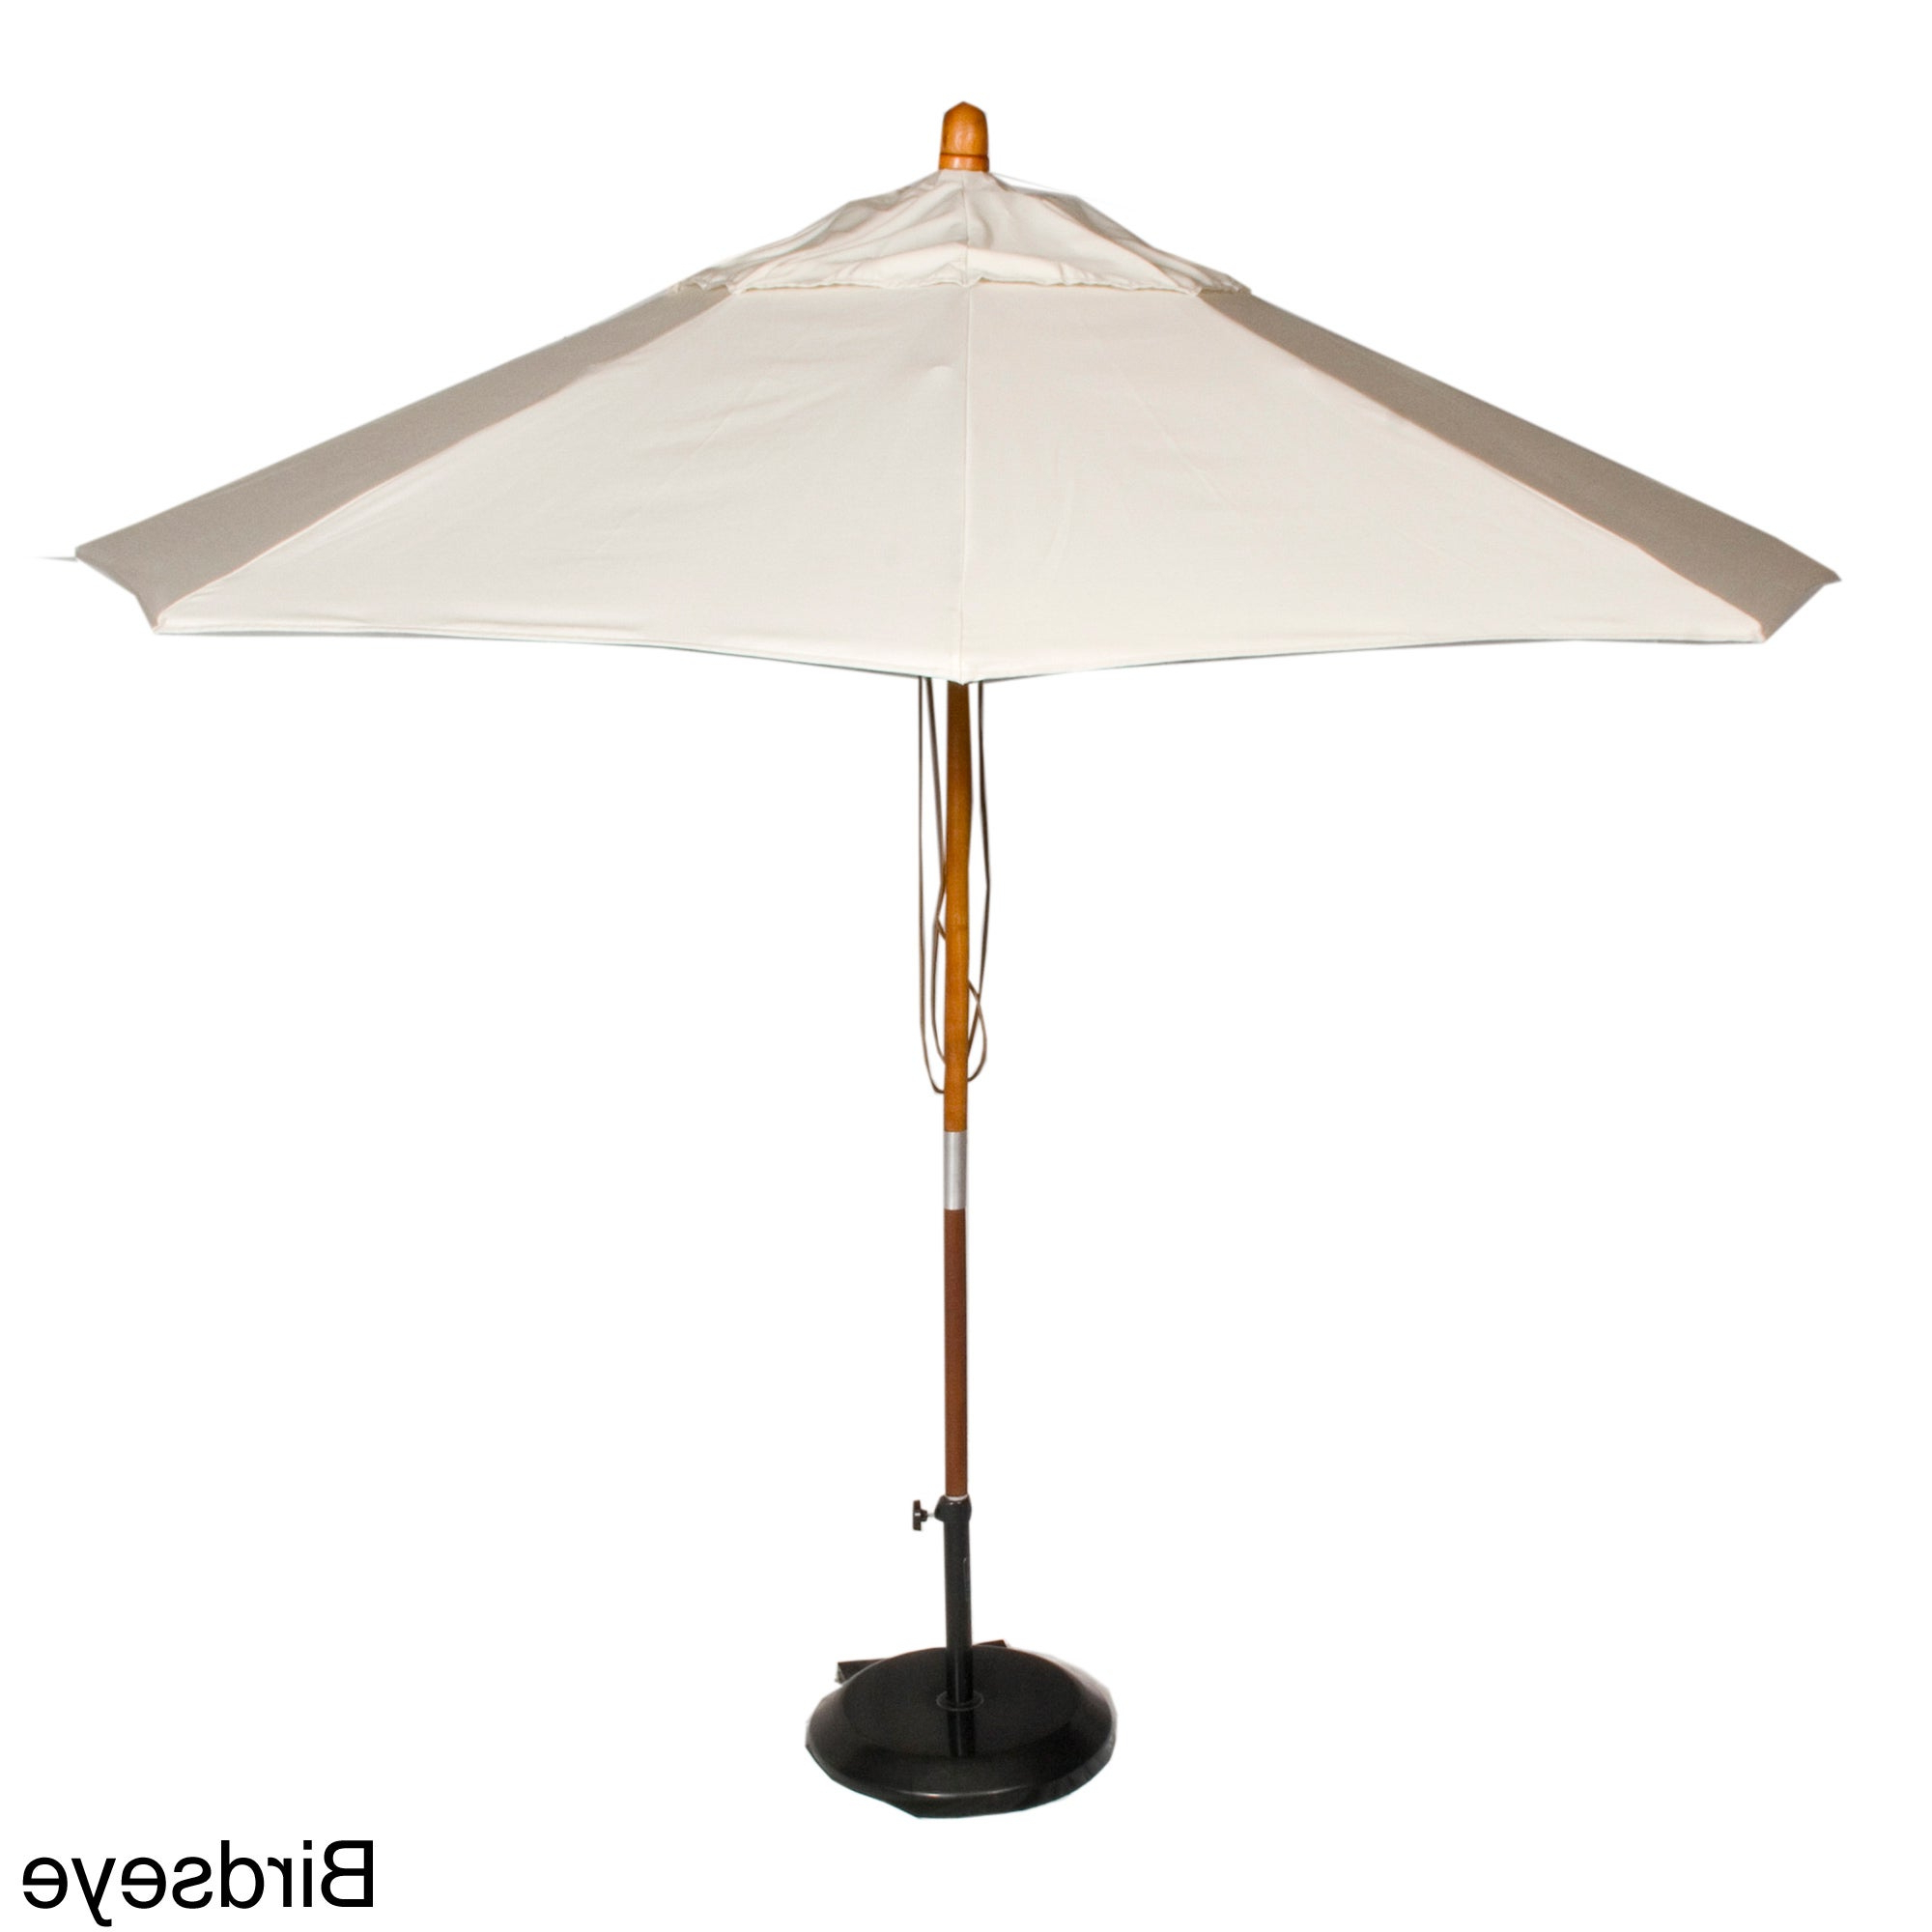 Phat Tommy Cantilever Umbrellas Throughout Newest Phat Tommy 9 Foot Sunbrella Fabric Marenti Wood Market Patio Umbrella (View 3 of 20)